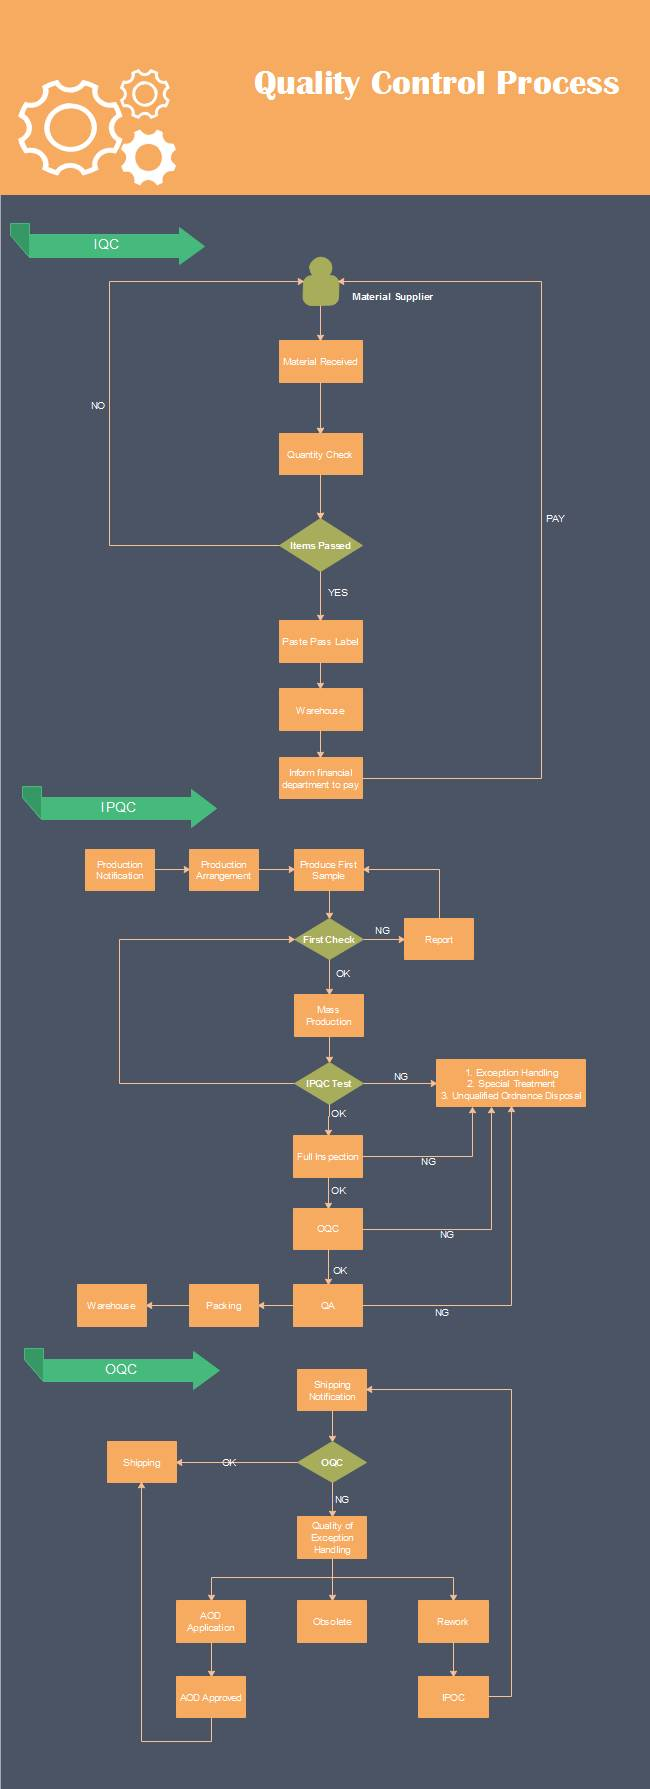 Process Control Flow Chart Template